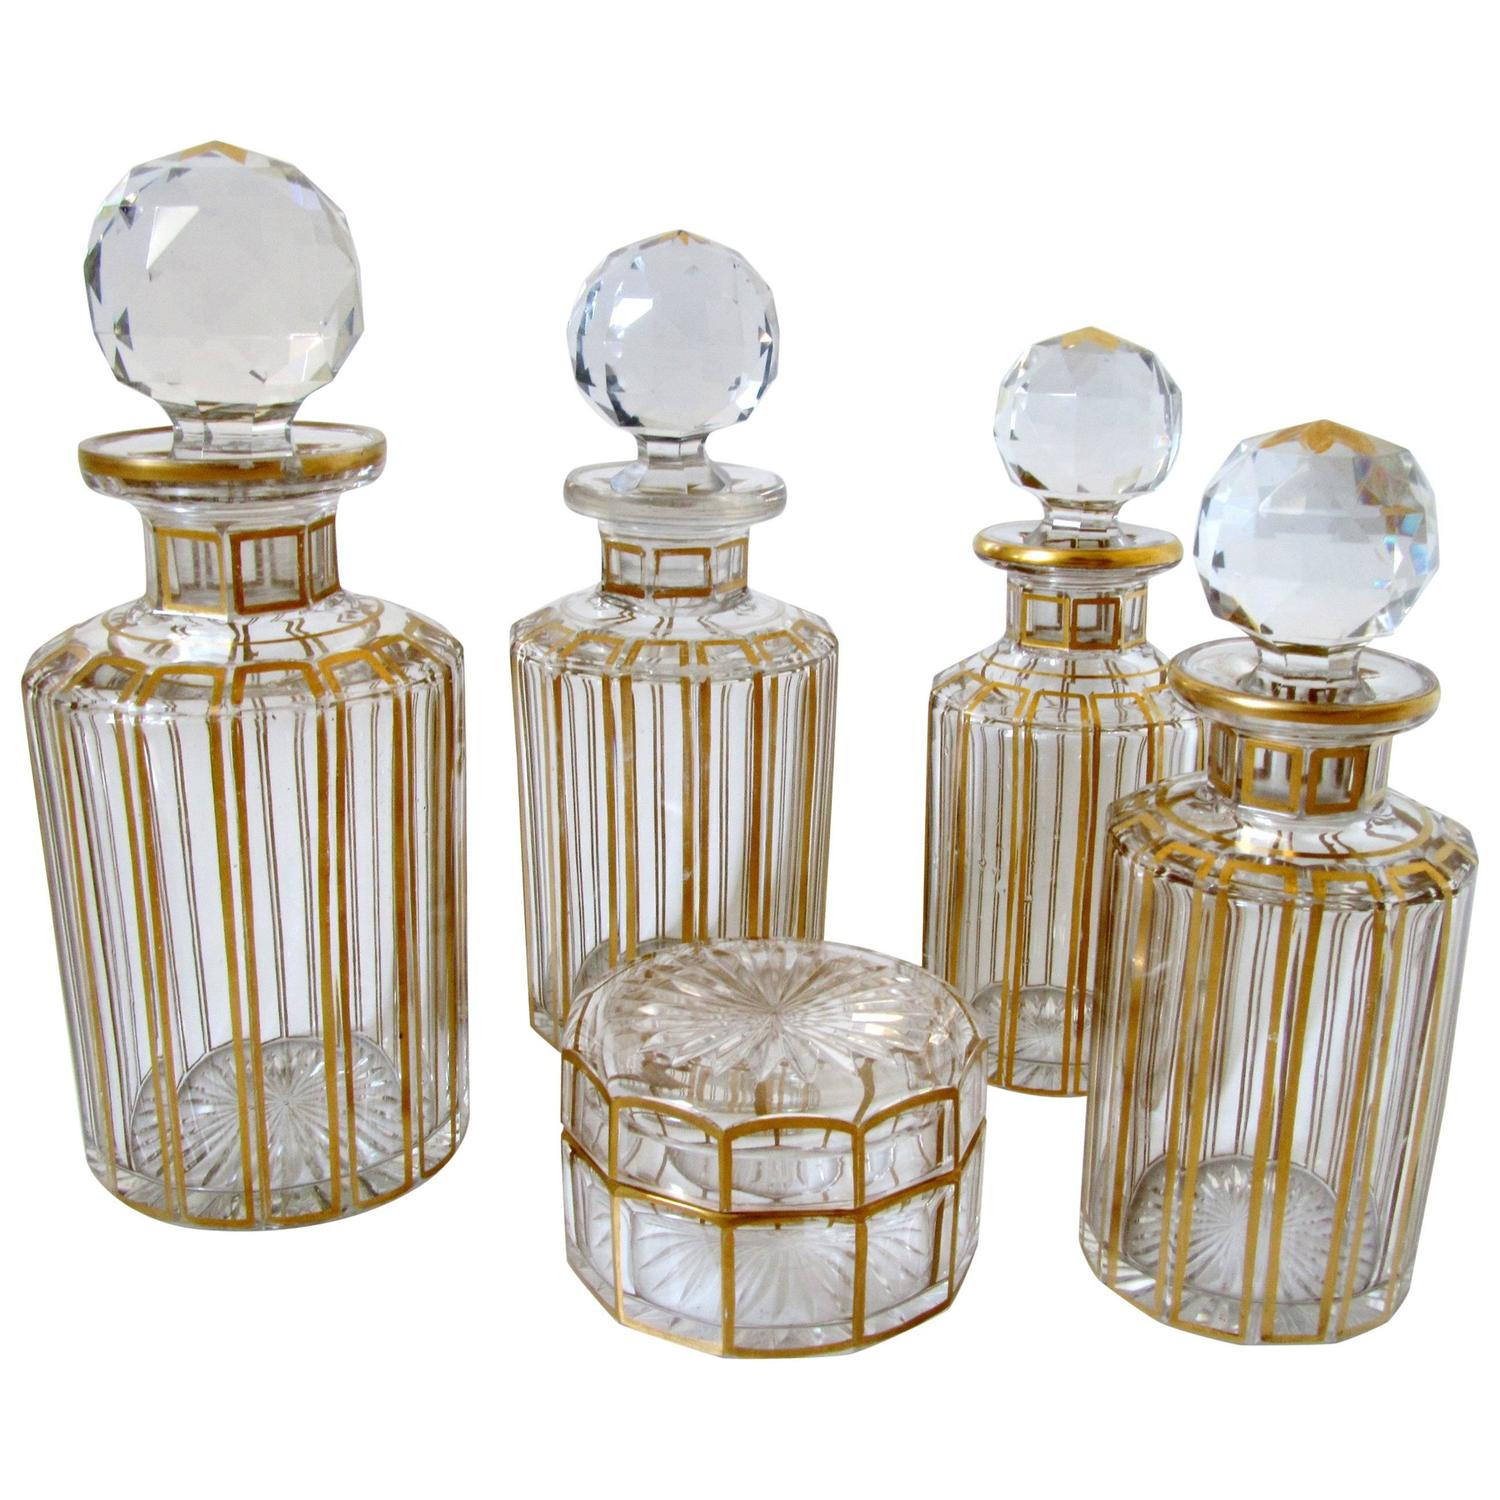 antique french baccarat gold enamel crystal dresser vanity perfume set 5 pc at 1stdibs - Enamel Picture Frames